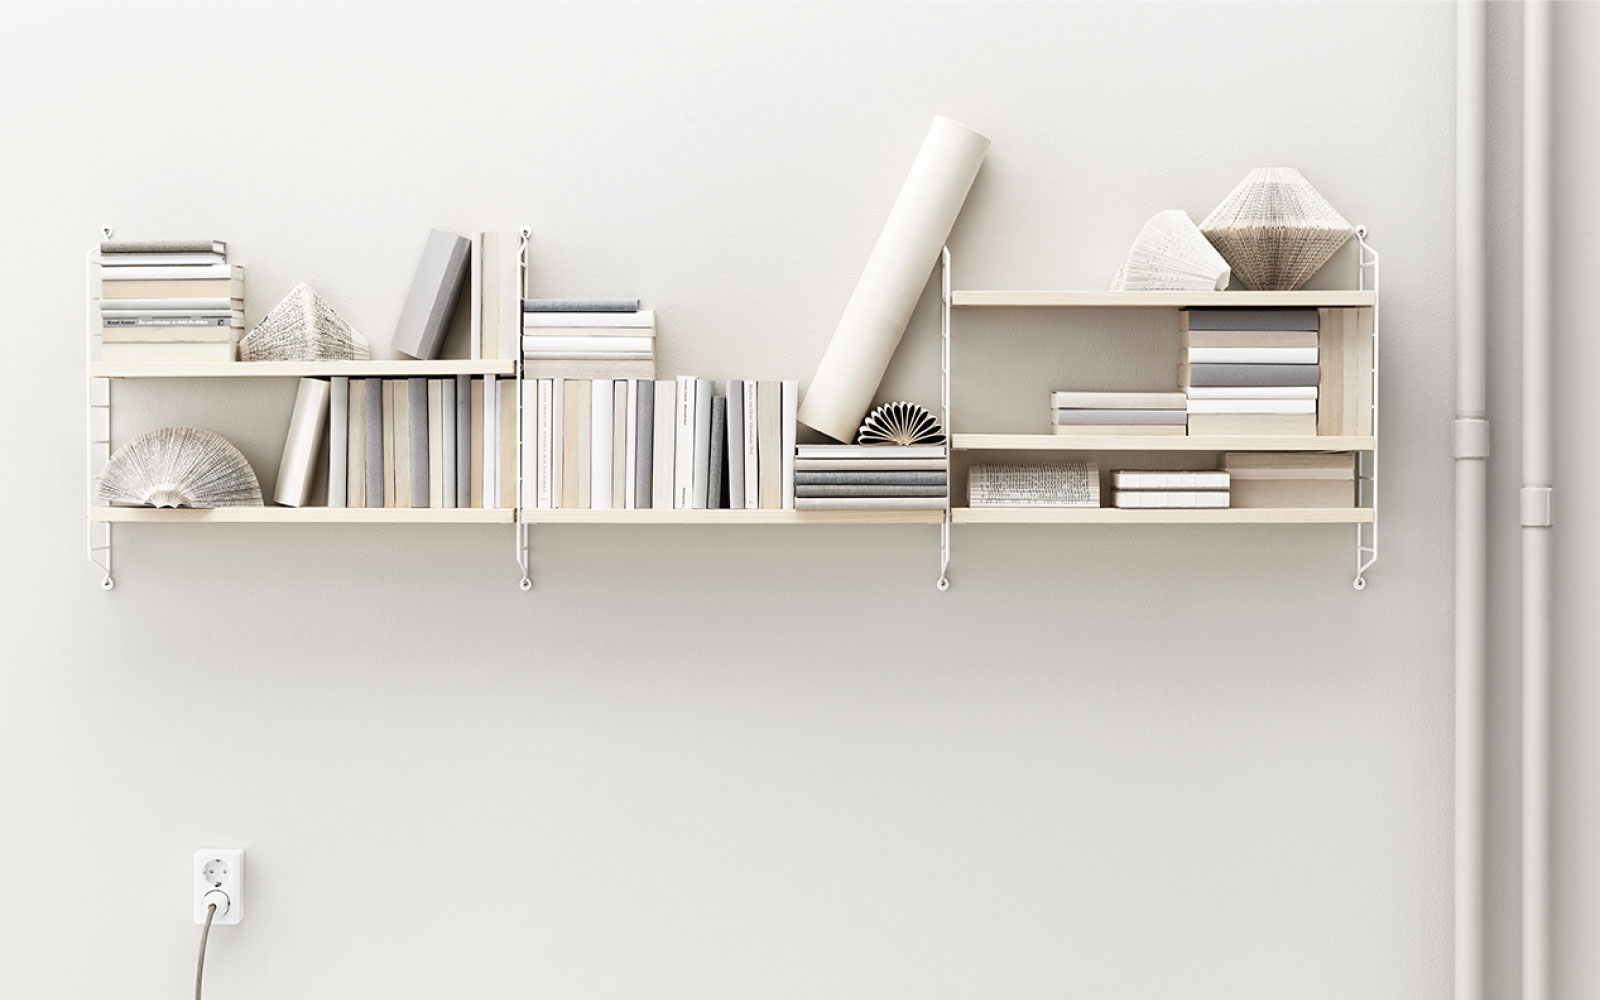 string-shelf-lookbook-styled-by-lotta-agaton-10